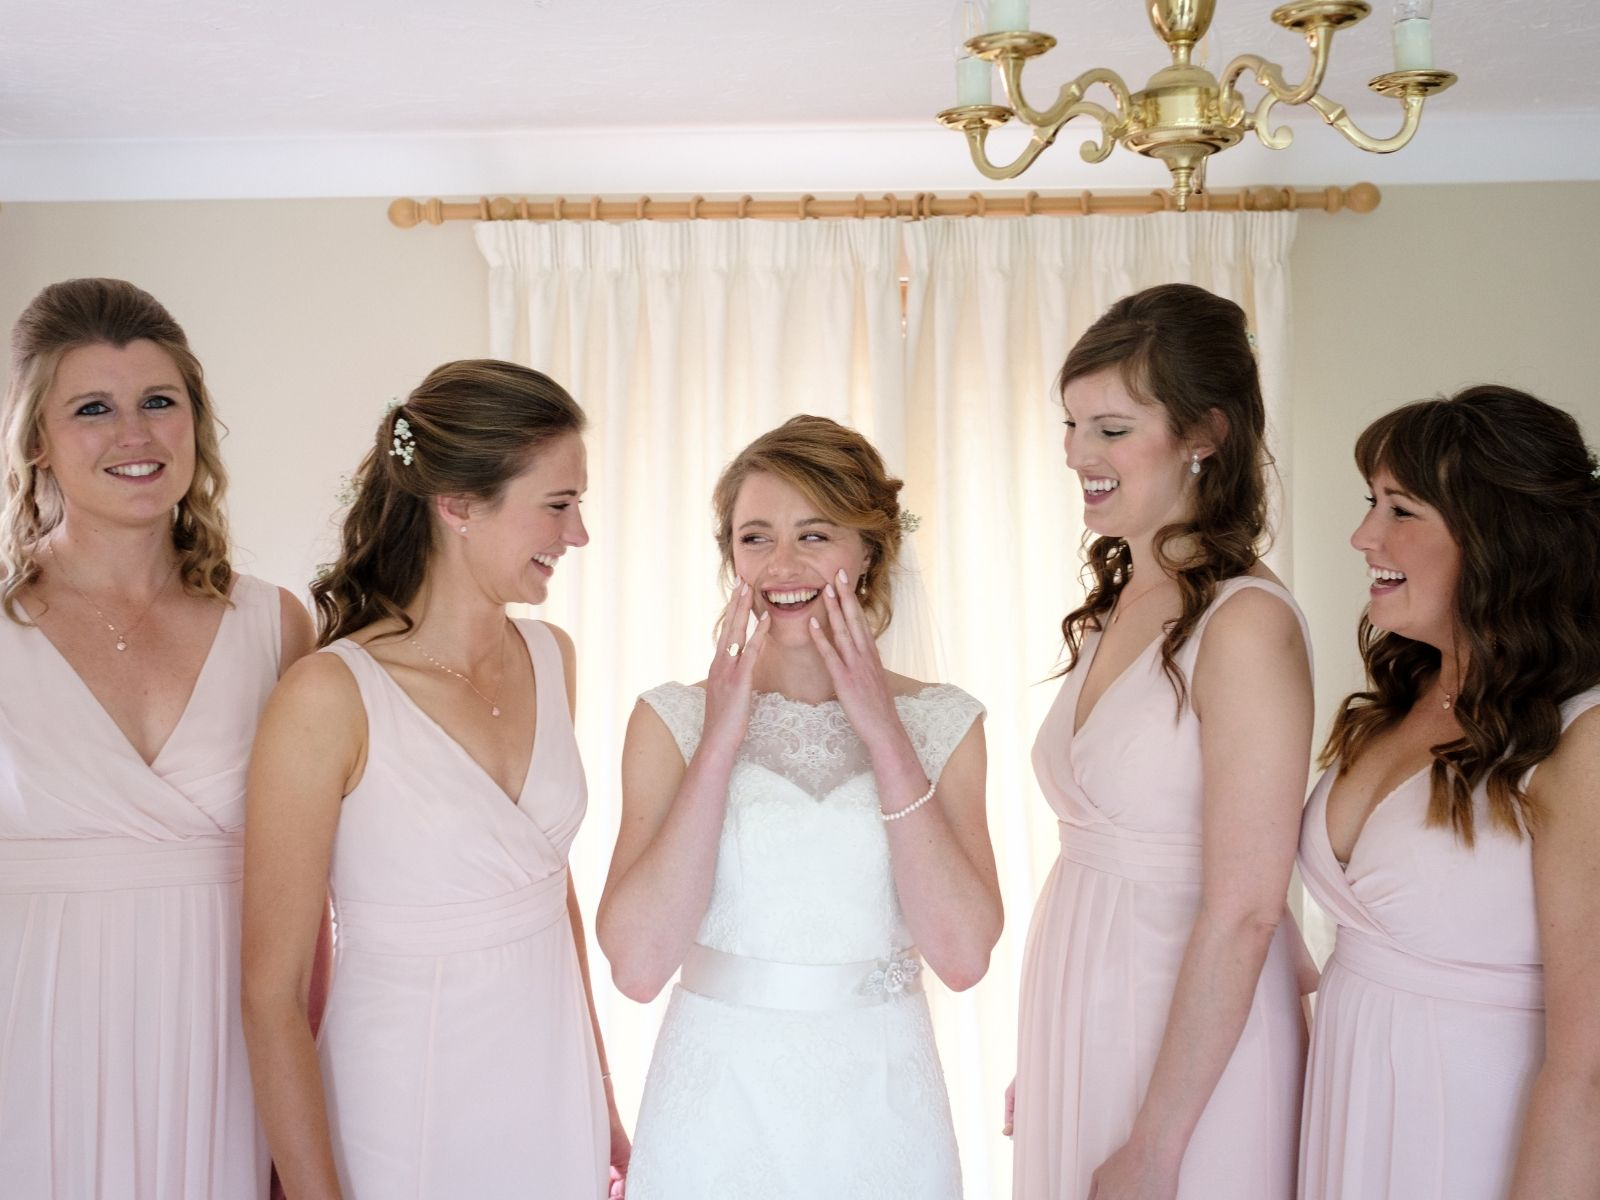 Boho Bride Harriet with her bridesmaids on her wedding day